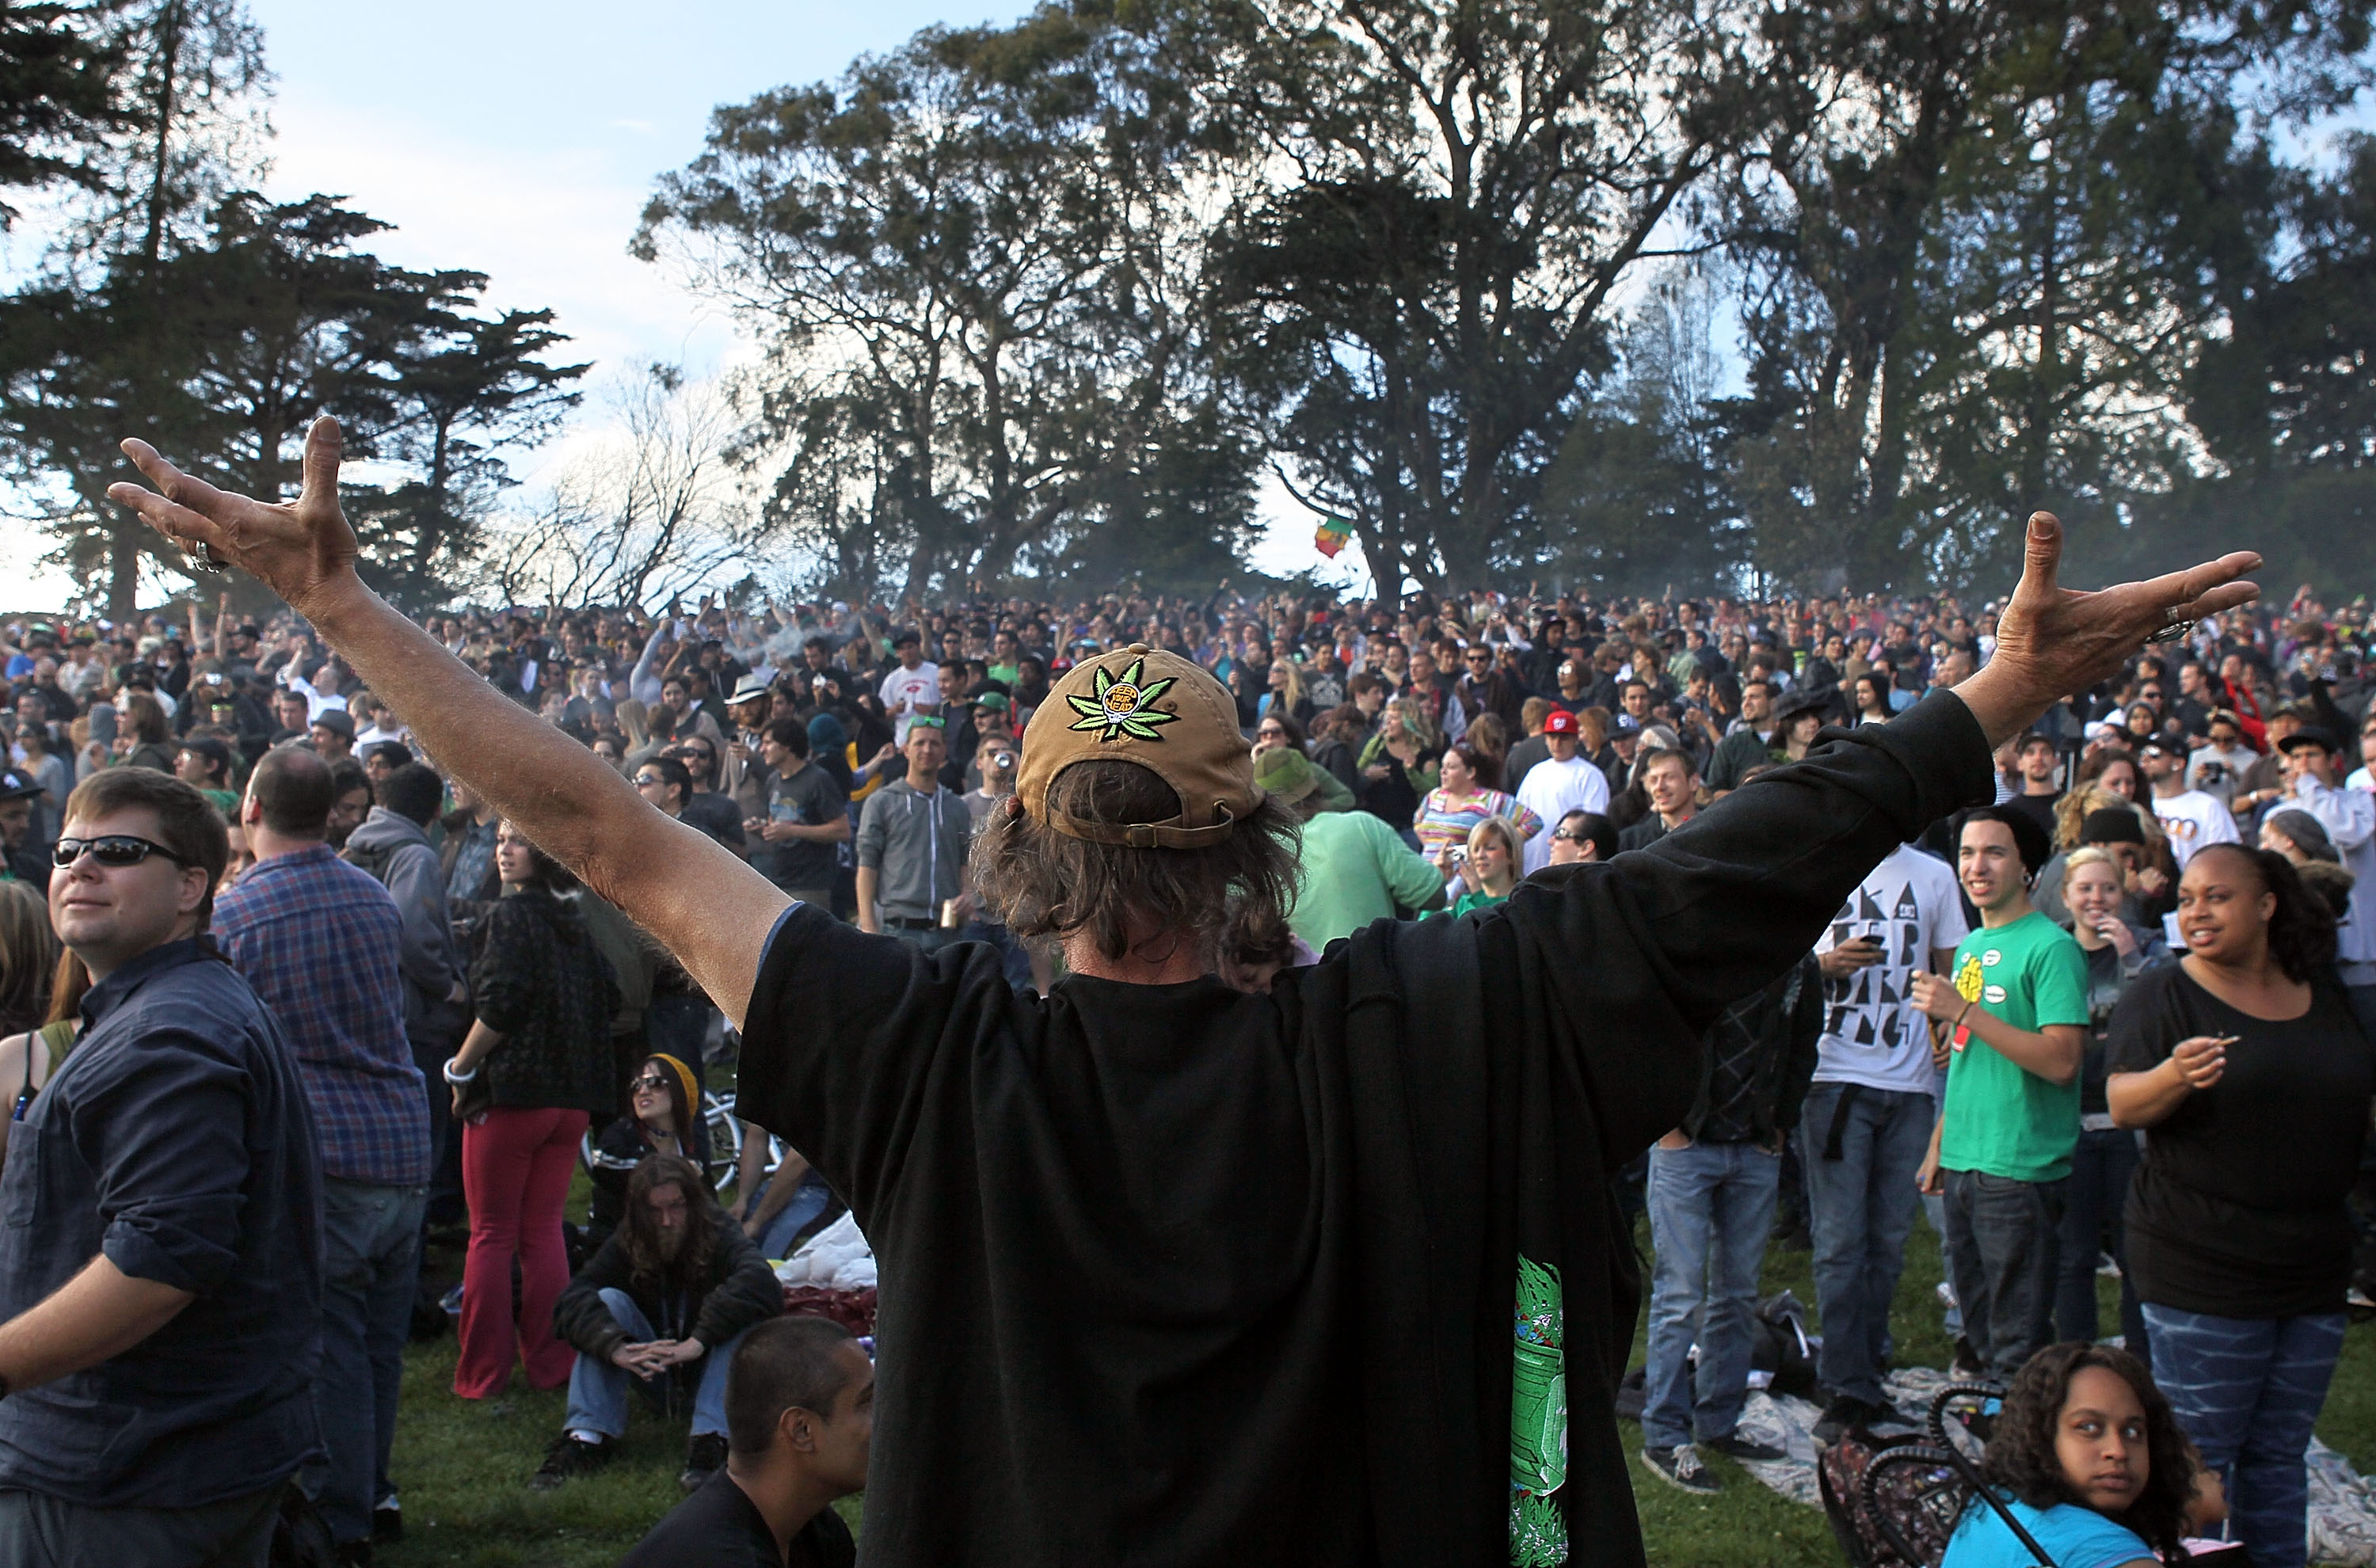 Man with arms outstretch is among pot smokers who descend on San Francisco's HIppie Hill to celebrate 4/20 Day